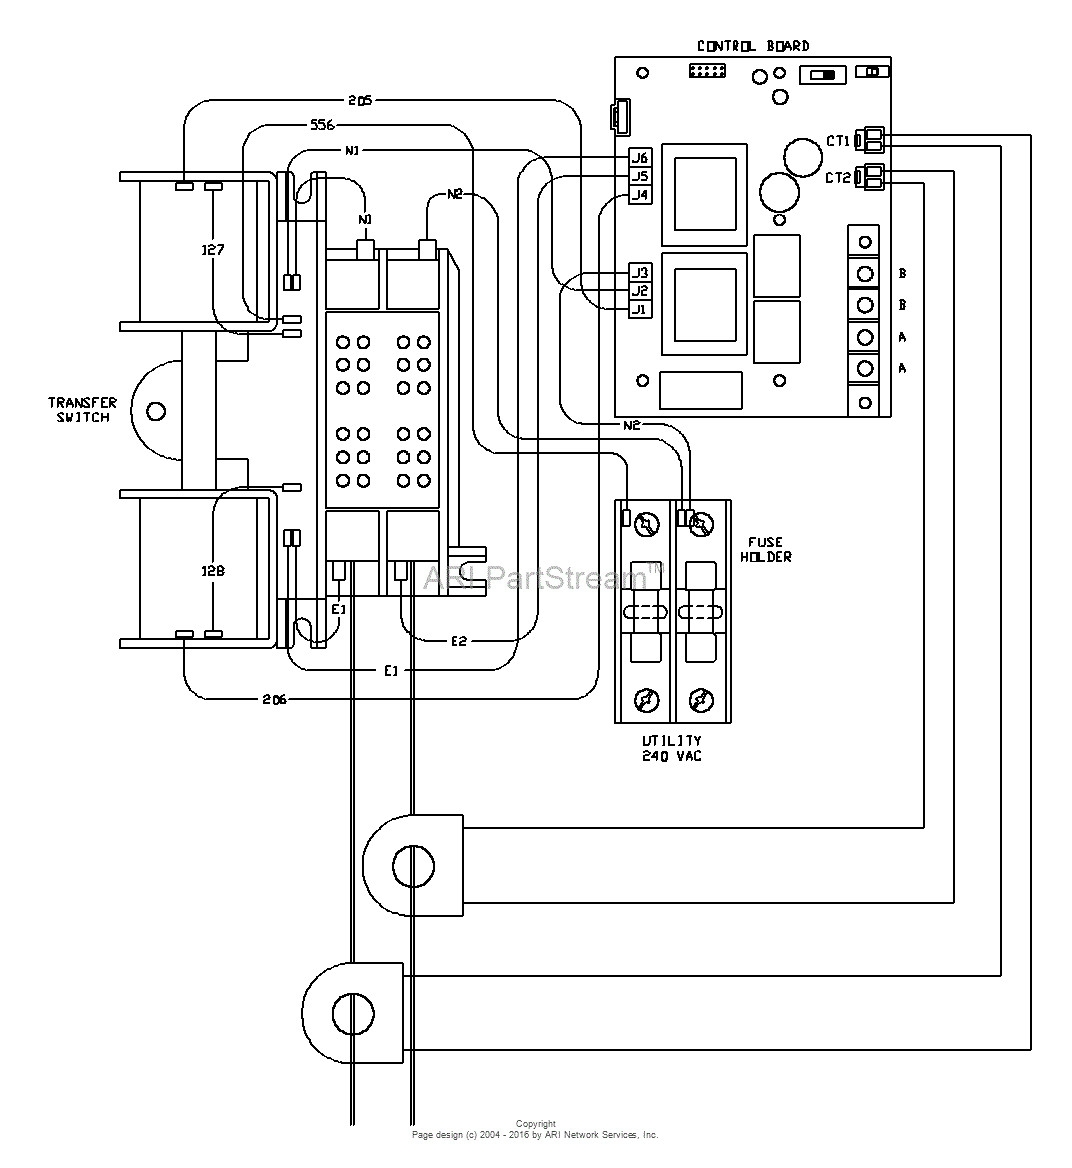 briggs and stratton transfer switch wiring diagram Collection-New Wiring Diagram for Transfer Switch Briggs and Stratton Power Generator Automatic Transfer Switch Wiring 19-k